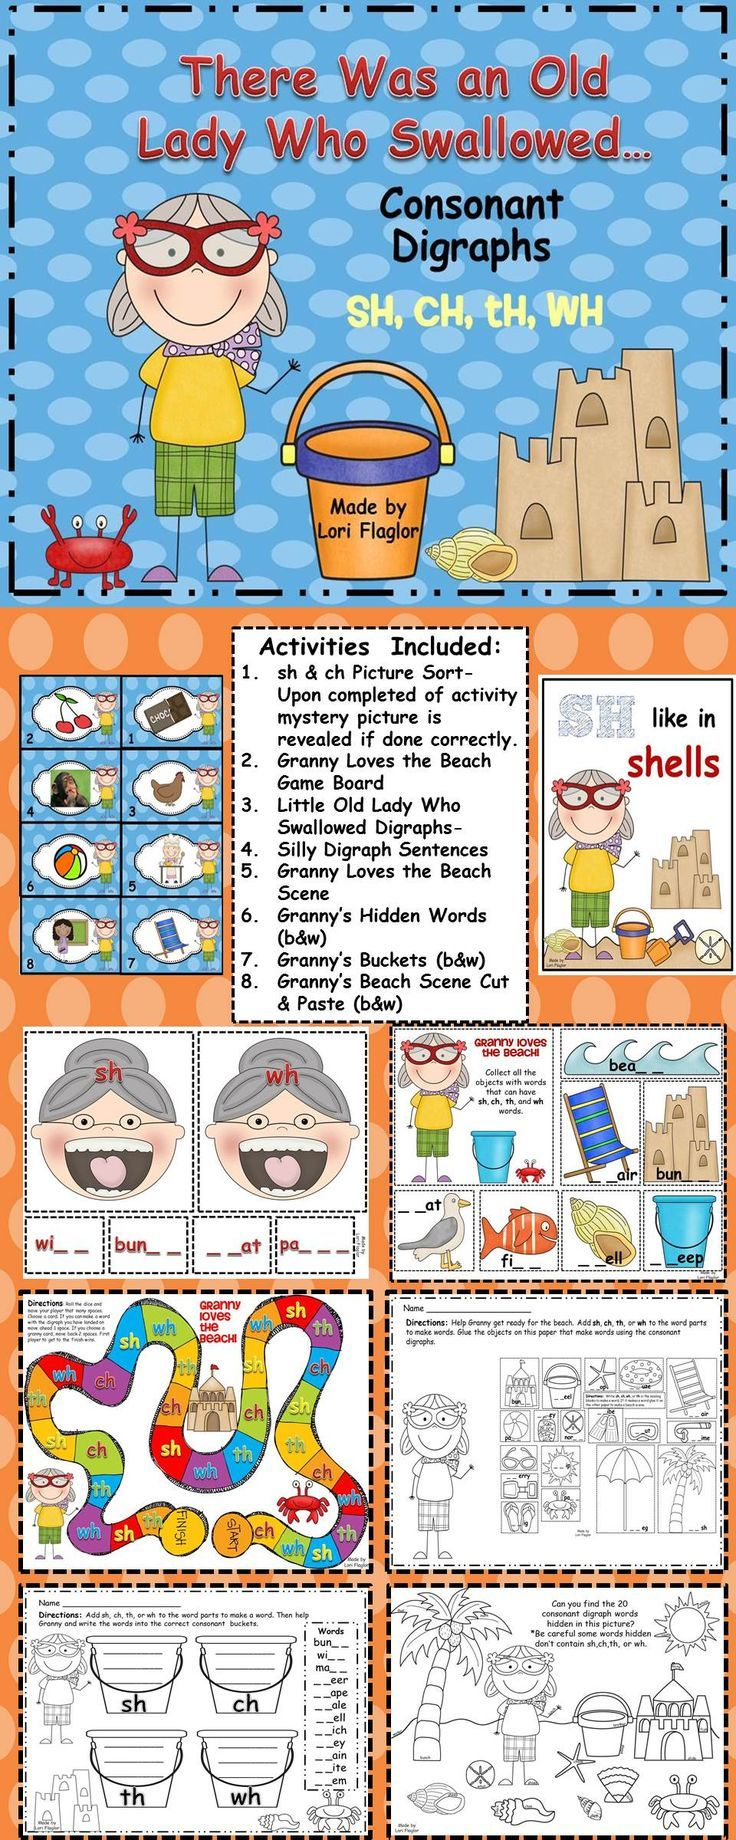 Consonant Digraphs The Little Old Lady Who Swallowed